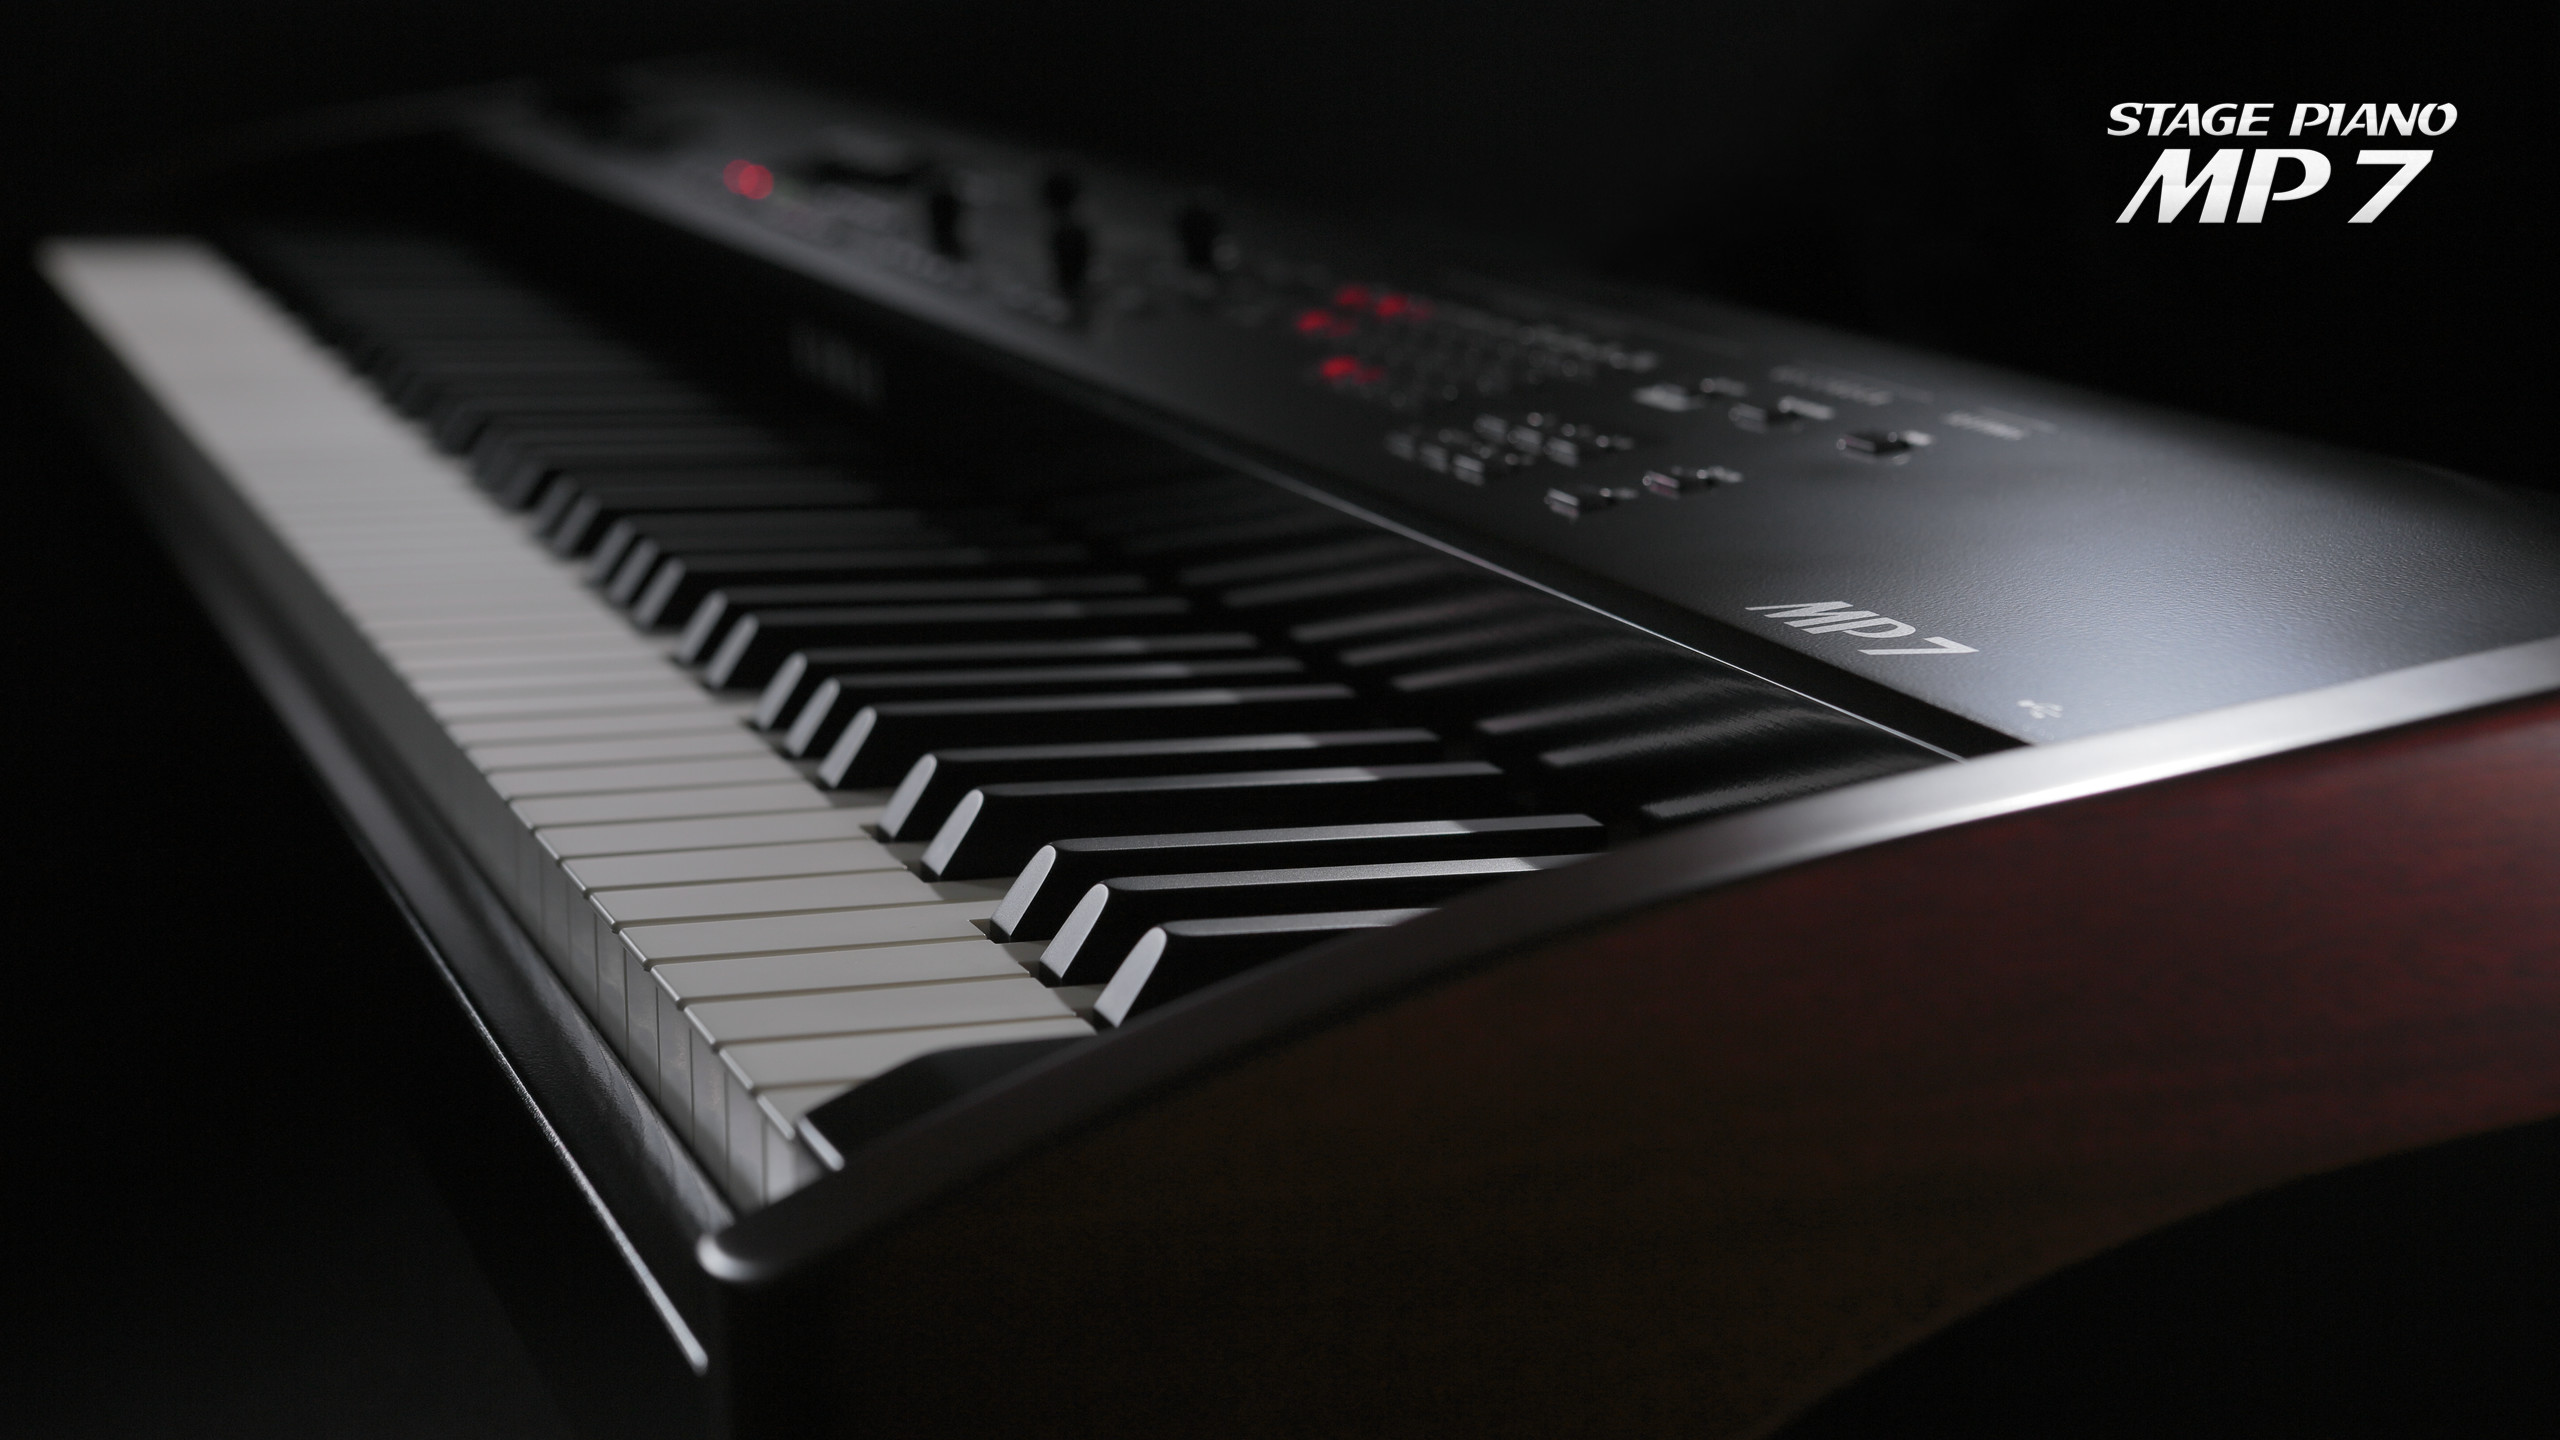 hd piano wallpaper 78 images